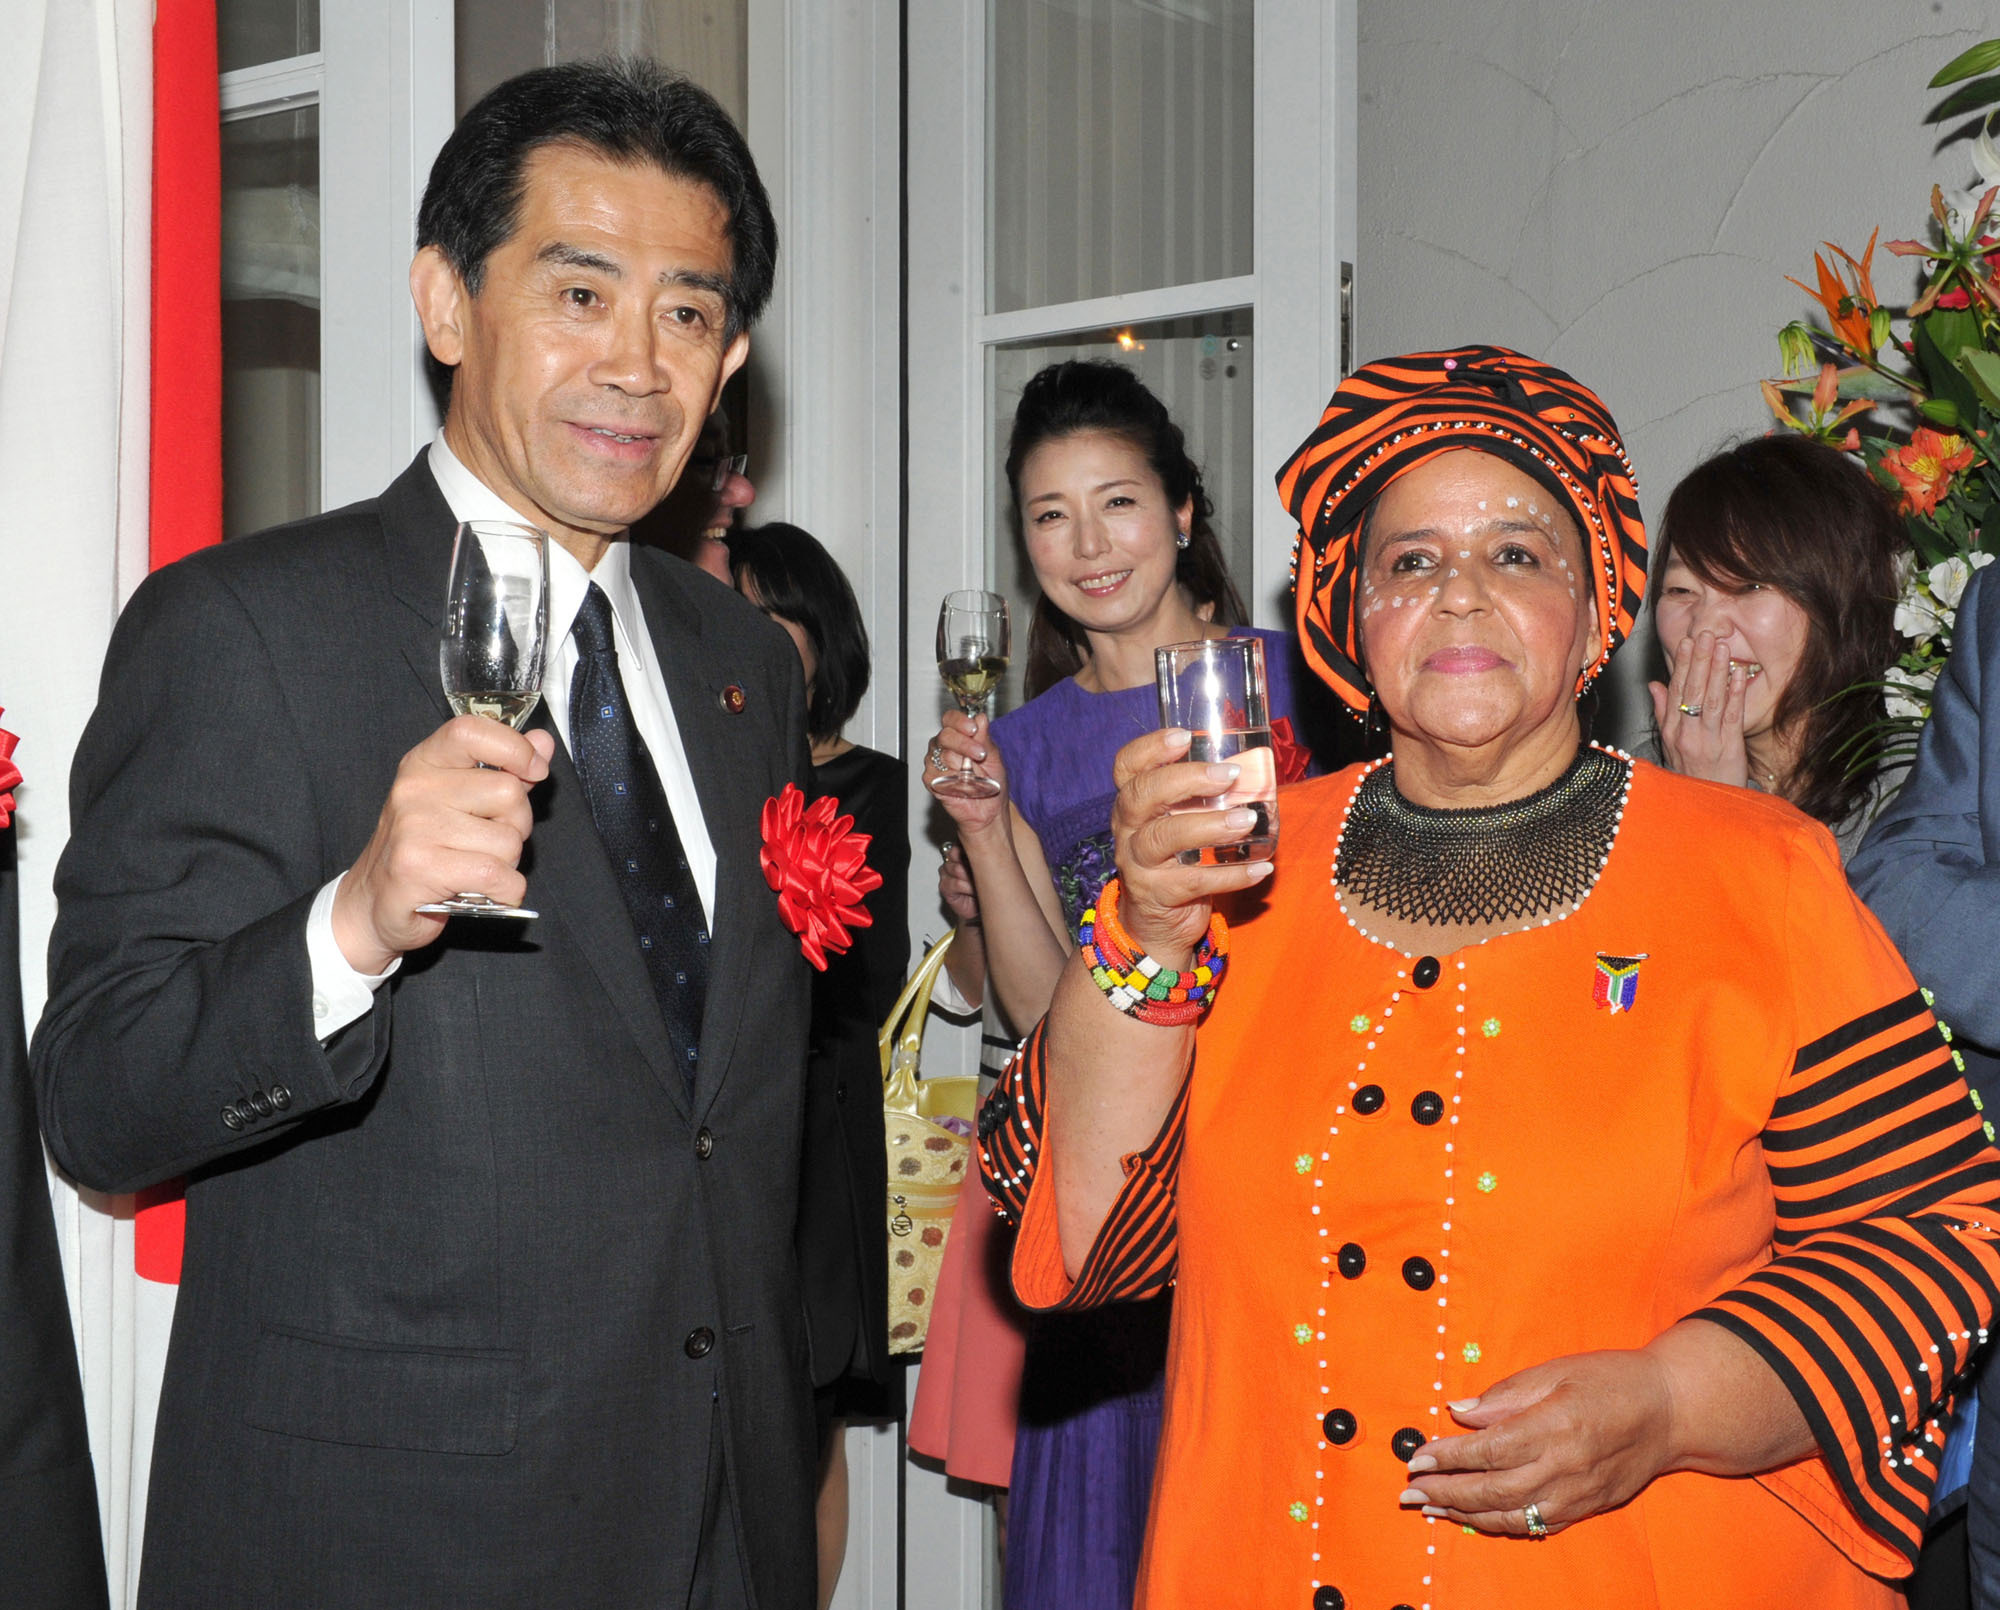 South African Ambassador Beryl Rose Sisulu (right) raises a glass with Ichiro Aisawa (left), chairman of the Japan-Africa Union Parliamentary Friendship League, and the South Africa sightseeing goodwill ambassador, actress Hitomi Takahashi (center), during a reception to celabrate the country's National Day at the official residence of the Republic of South Africa in Tokyo on April 27. | YOSHIAKI MIURA